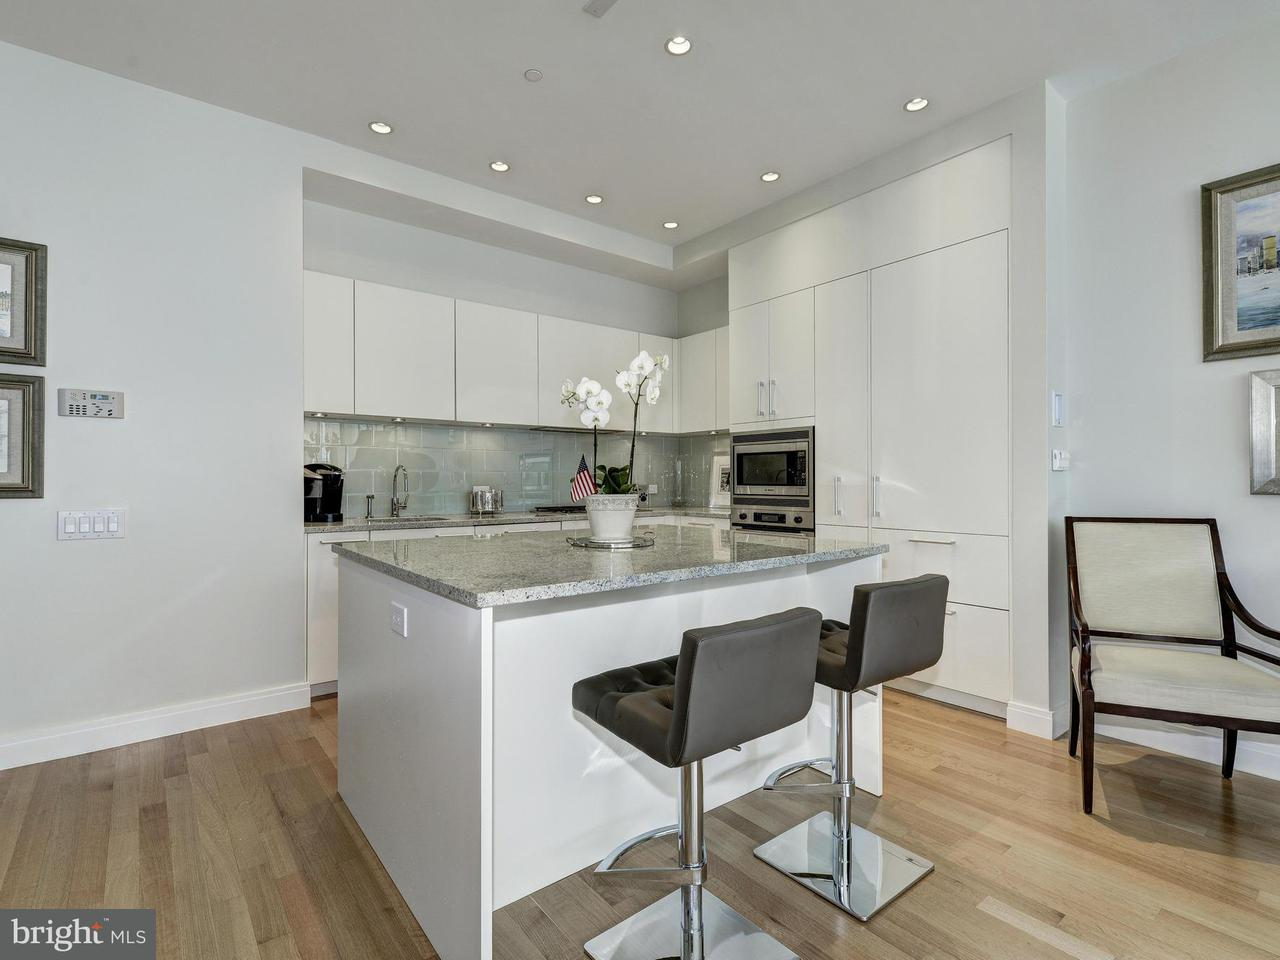 Additional photo for property listing at 1177 22nd St NW #4h  Washington, District Of Columbia 20037 United States